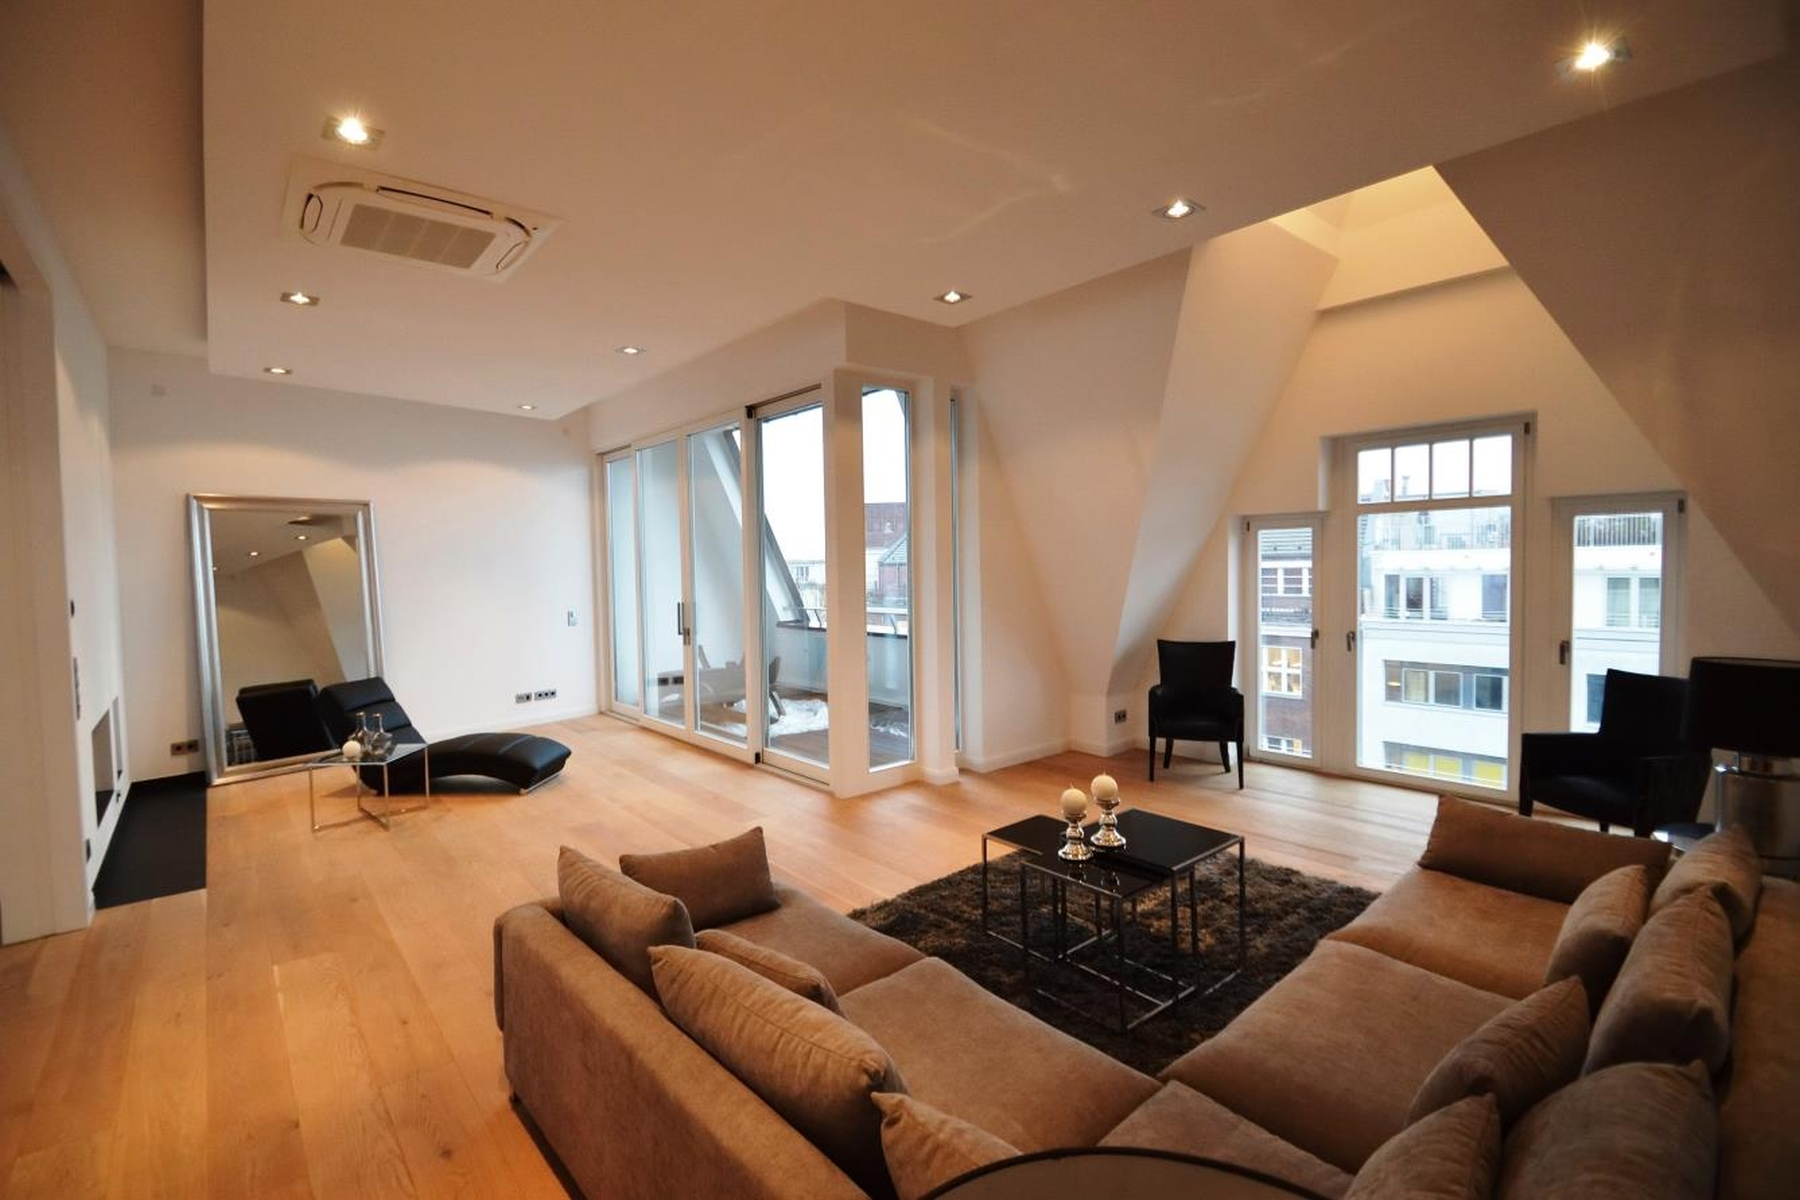 Appartement pour l Vente à Luxuriously developed Penthouse with Rooftop Terrace! Berlin, Berlin, 10707 Allemagne